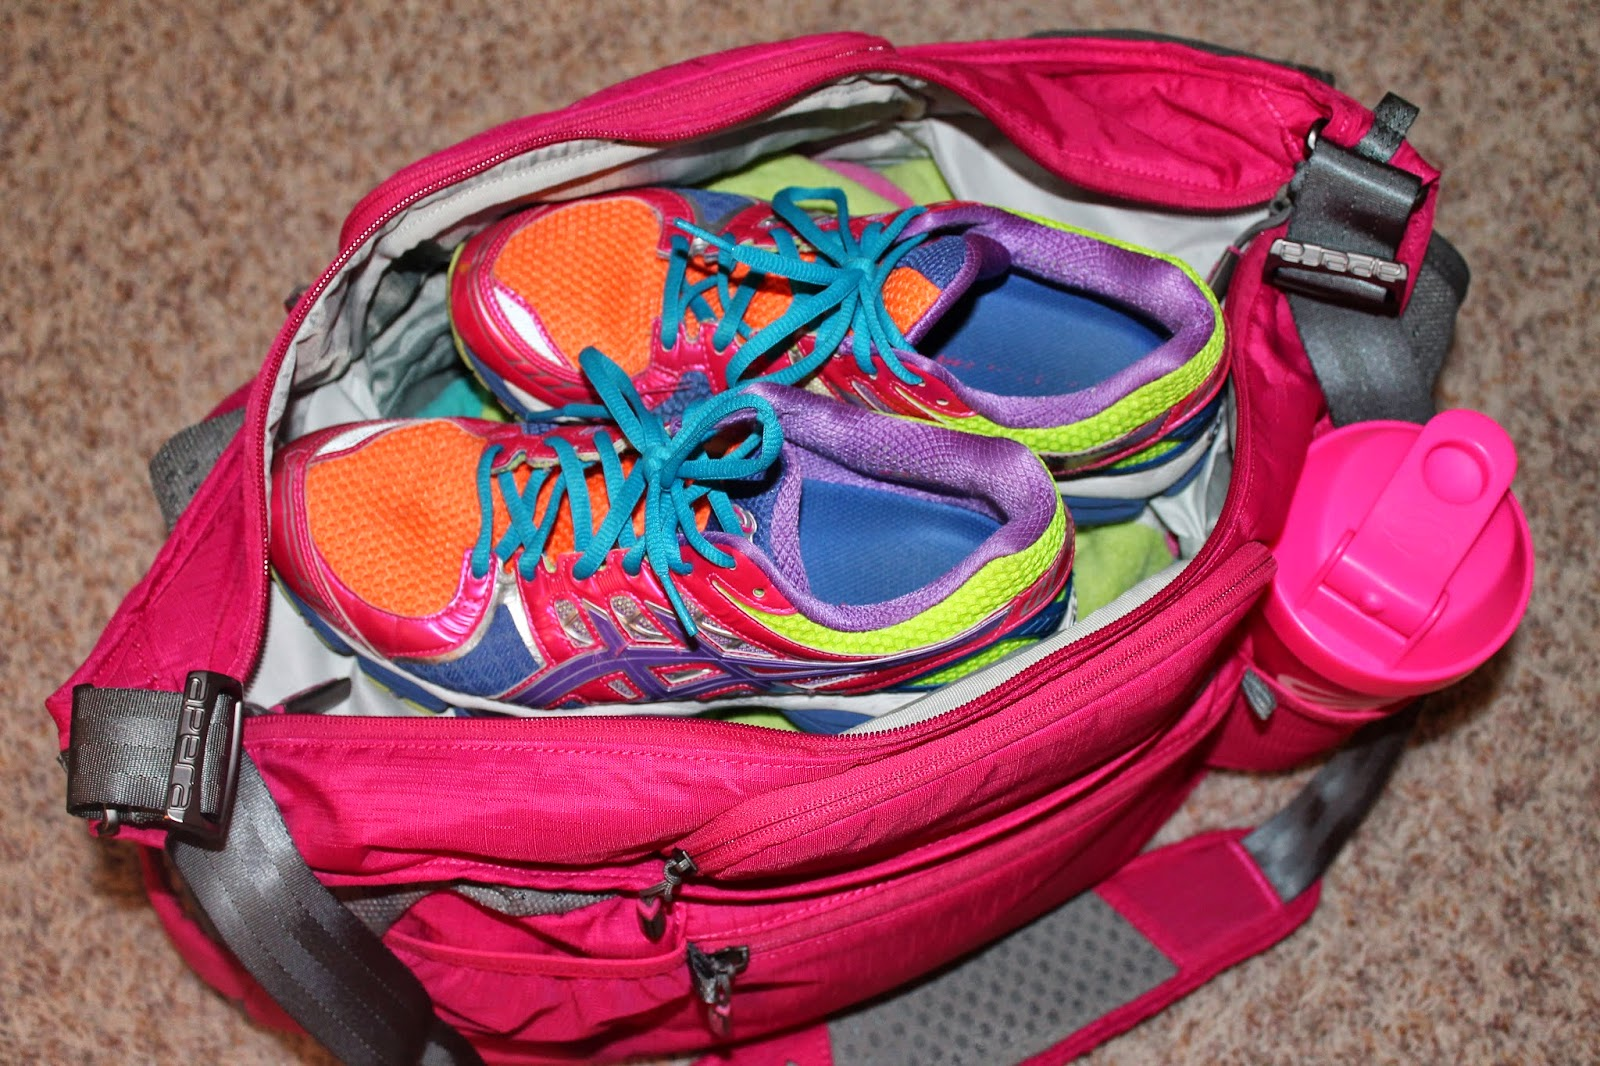 Love How My Shoes Match Bag You Might Also Notice Matching Pink Shaker Bottle There Is Not Just One But Two Water Holders